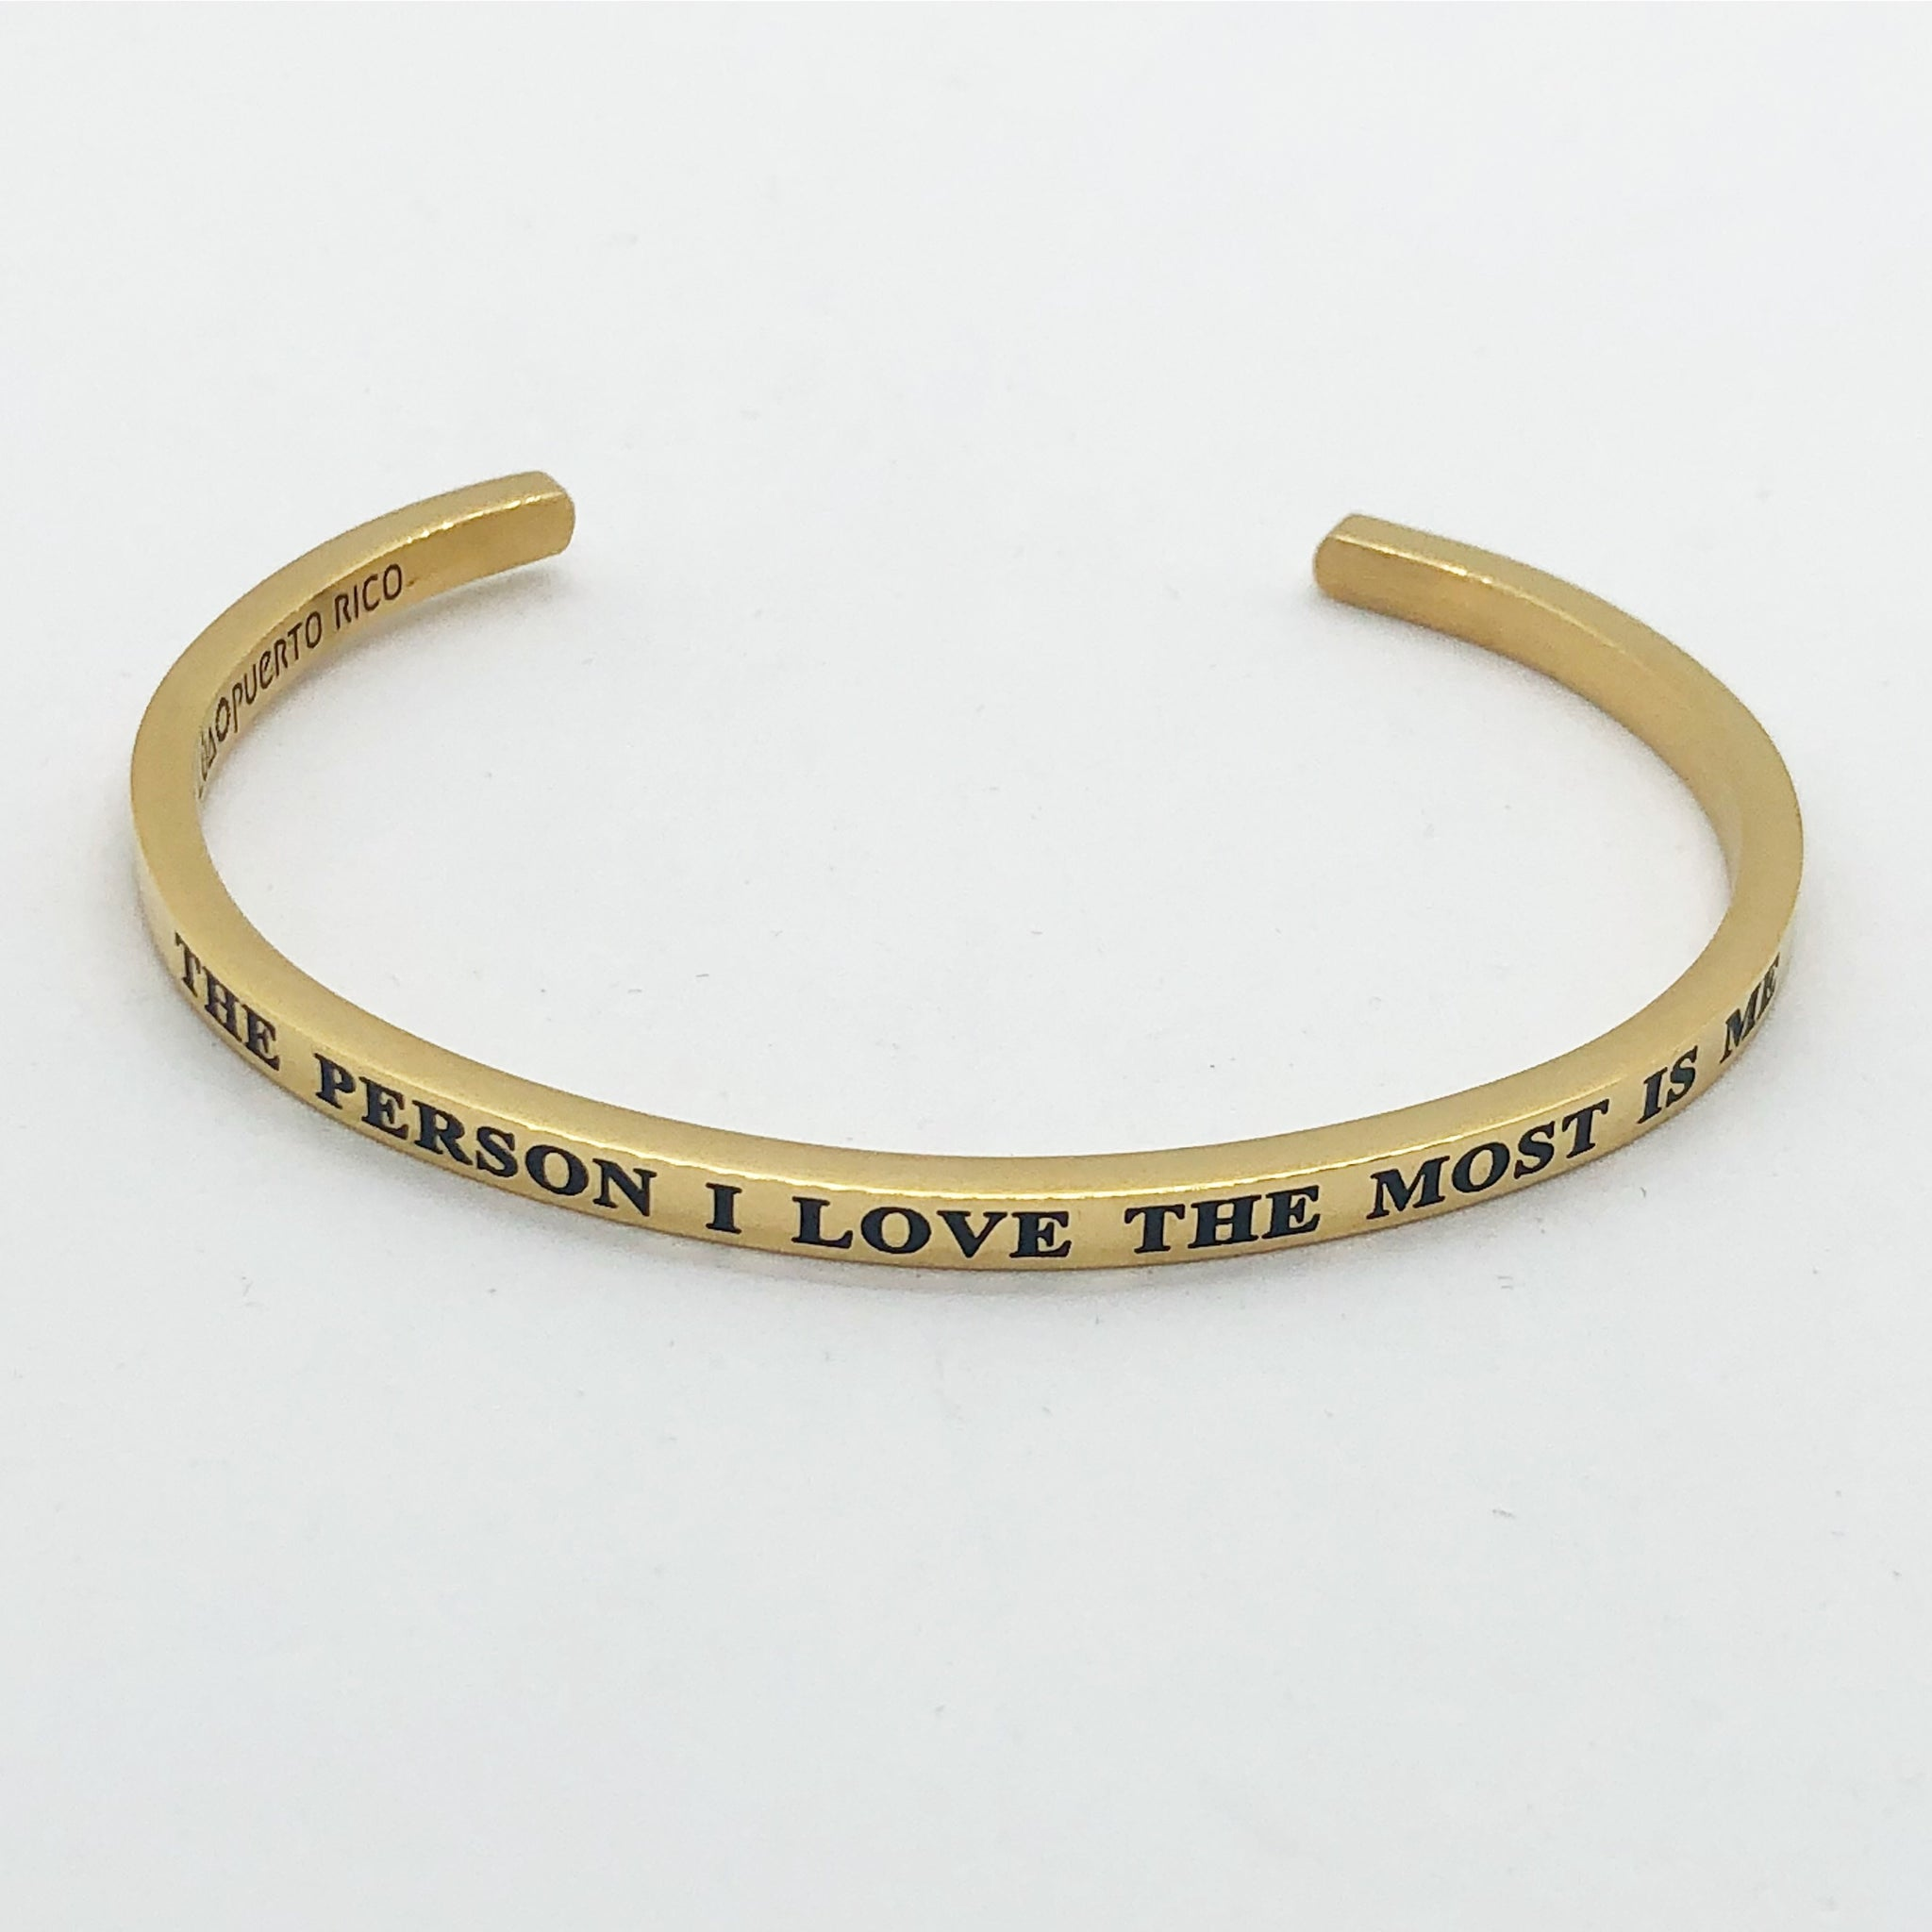 The person I love the most is me bangle